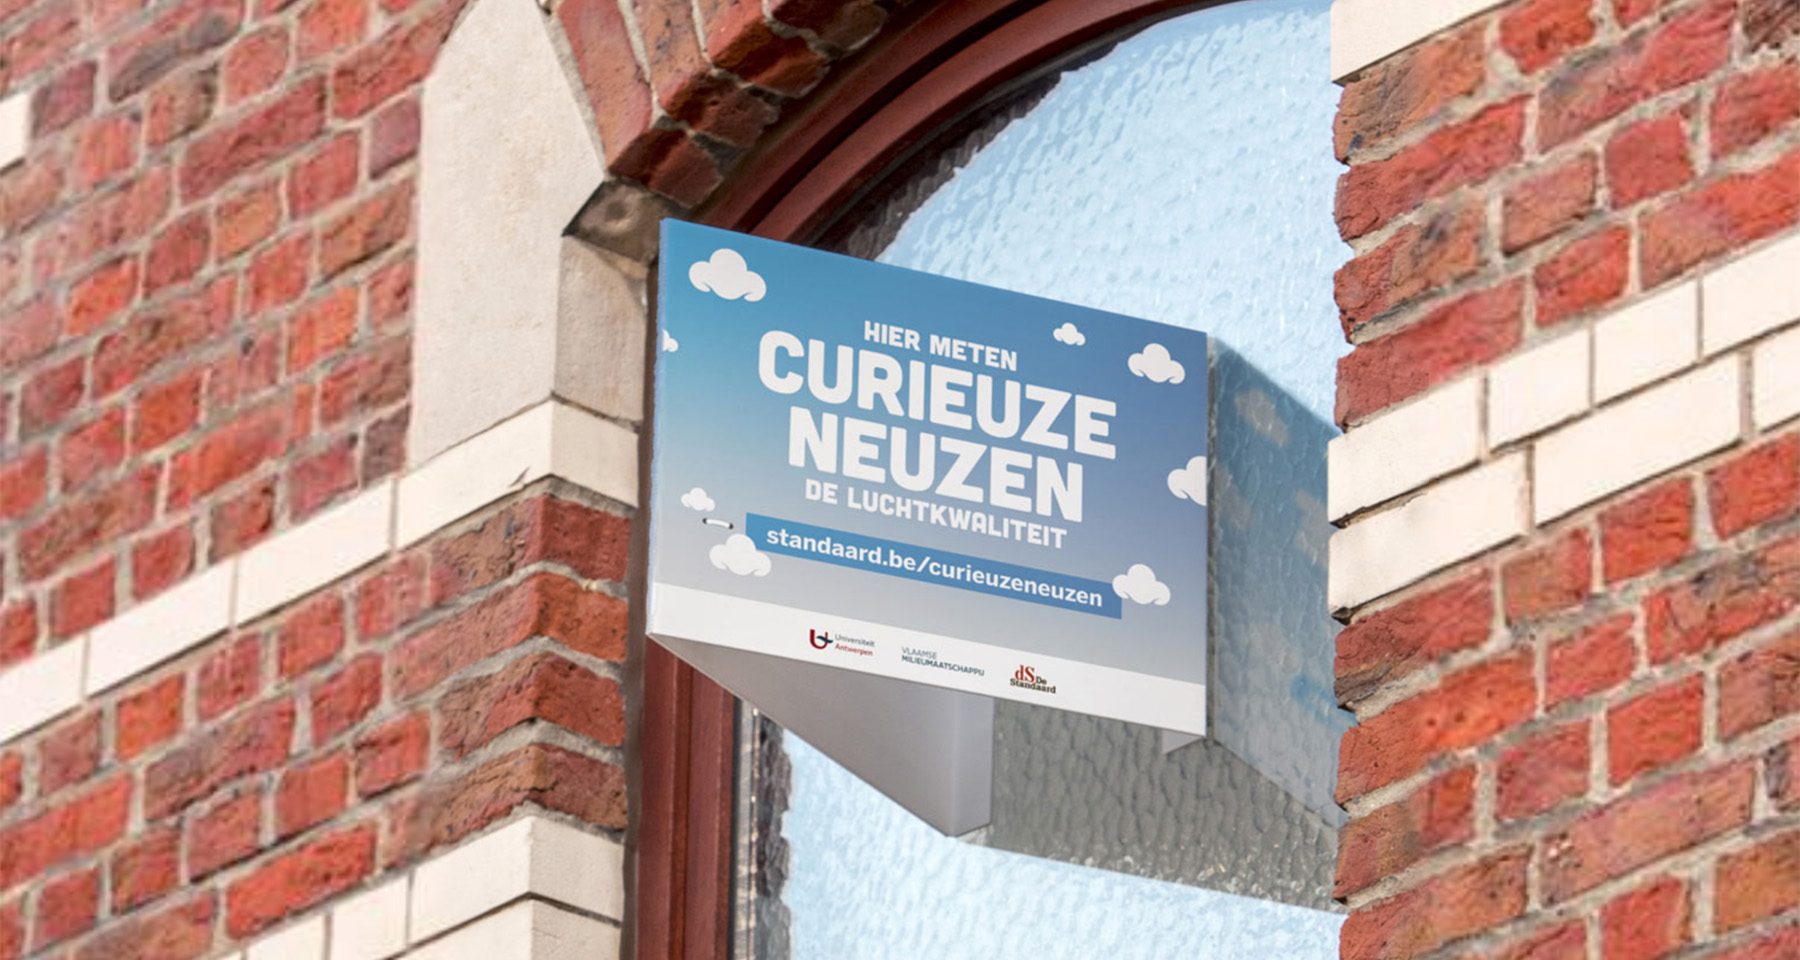 De Standaard extends brand with citizen science research